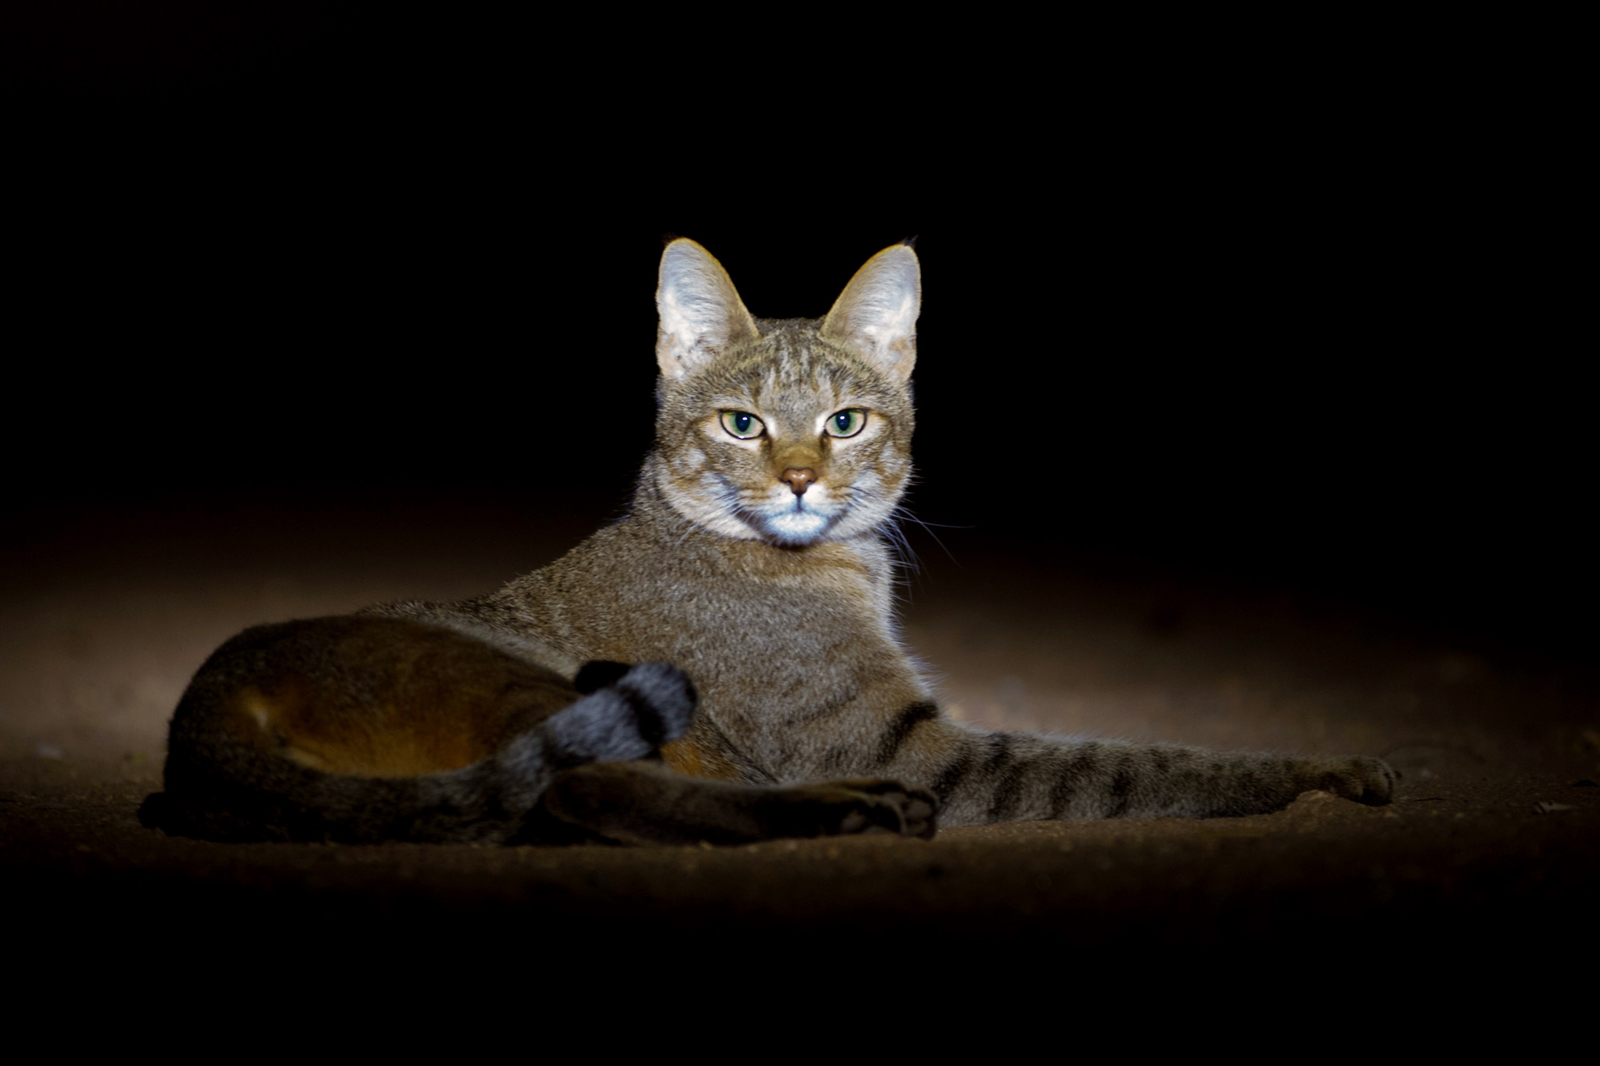 An African wildcat in Kruger National Park, South Africa ©Arnoud Quanjer